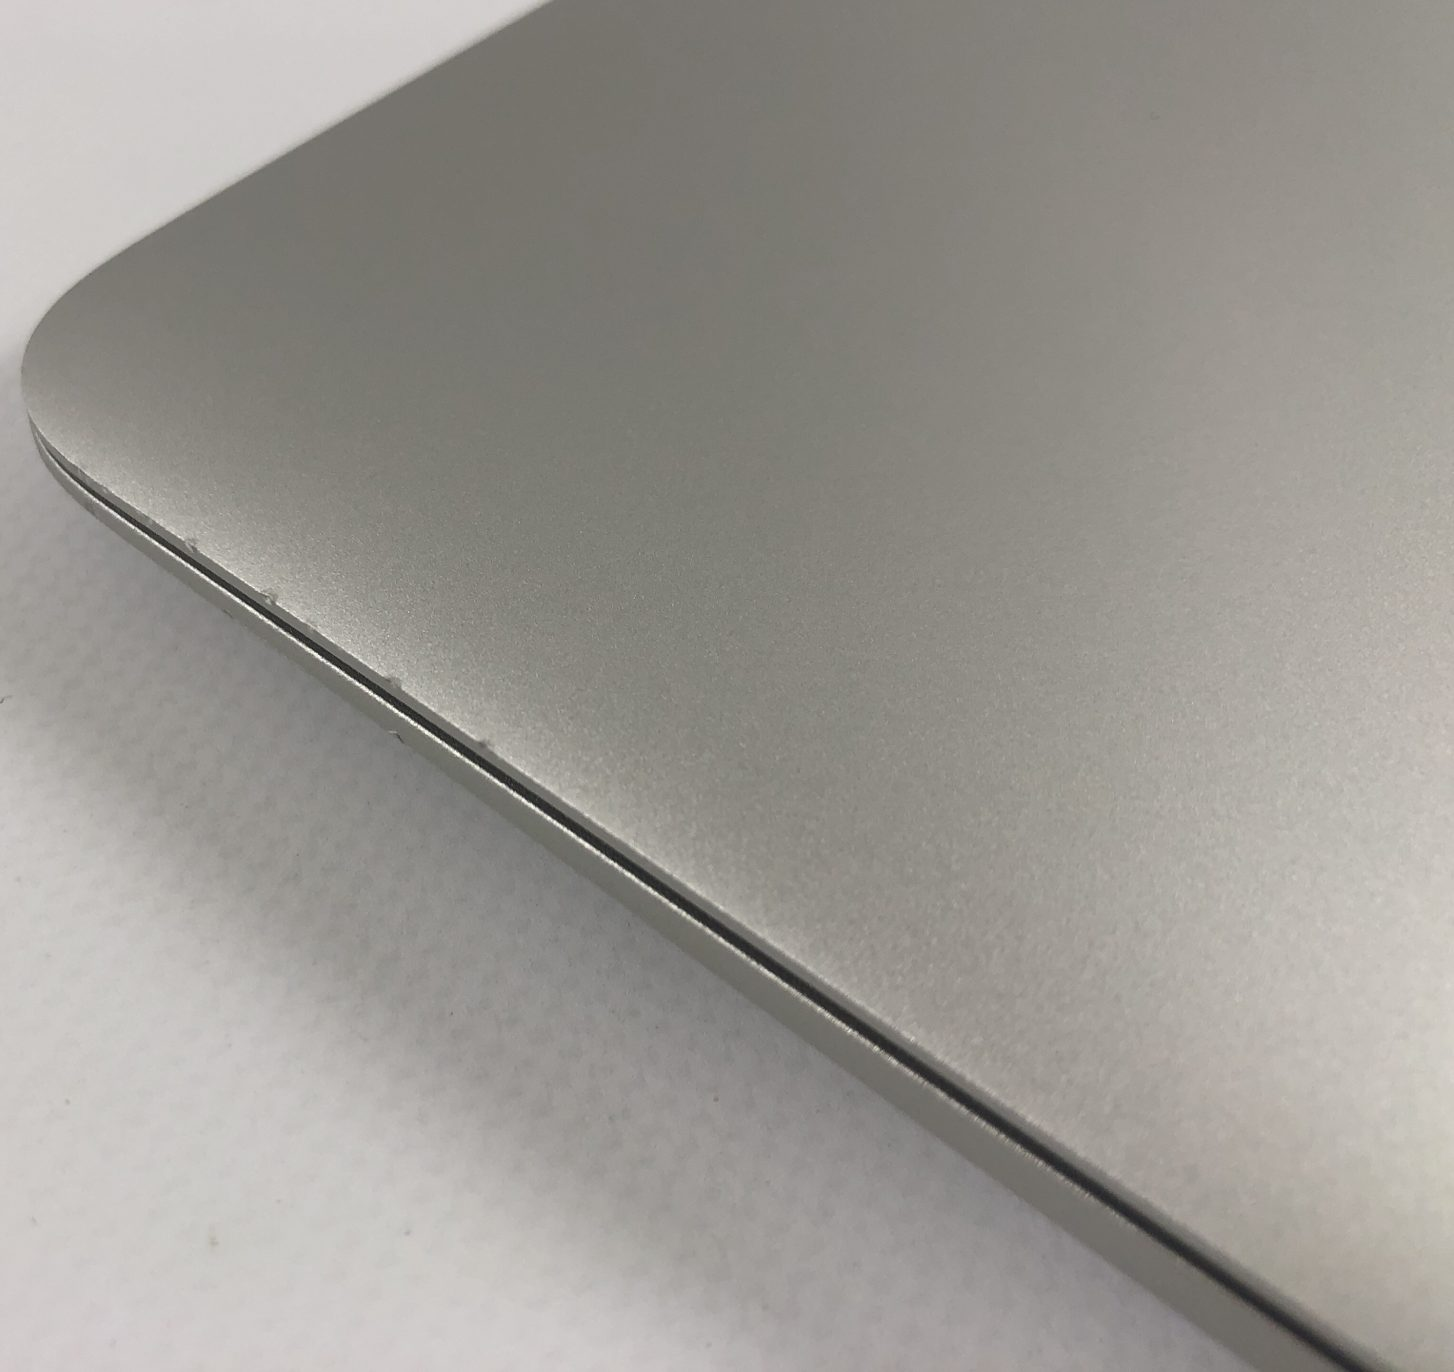 "MacBook Air 13"" Early 2015 (Intel Core i5 1.6 GHz 4 GB RAM 128 GB SSD), Intel Core i5 1.6 GHz, 4 GB RAM, 128 GB SSD, Afbeelding 3"